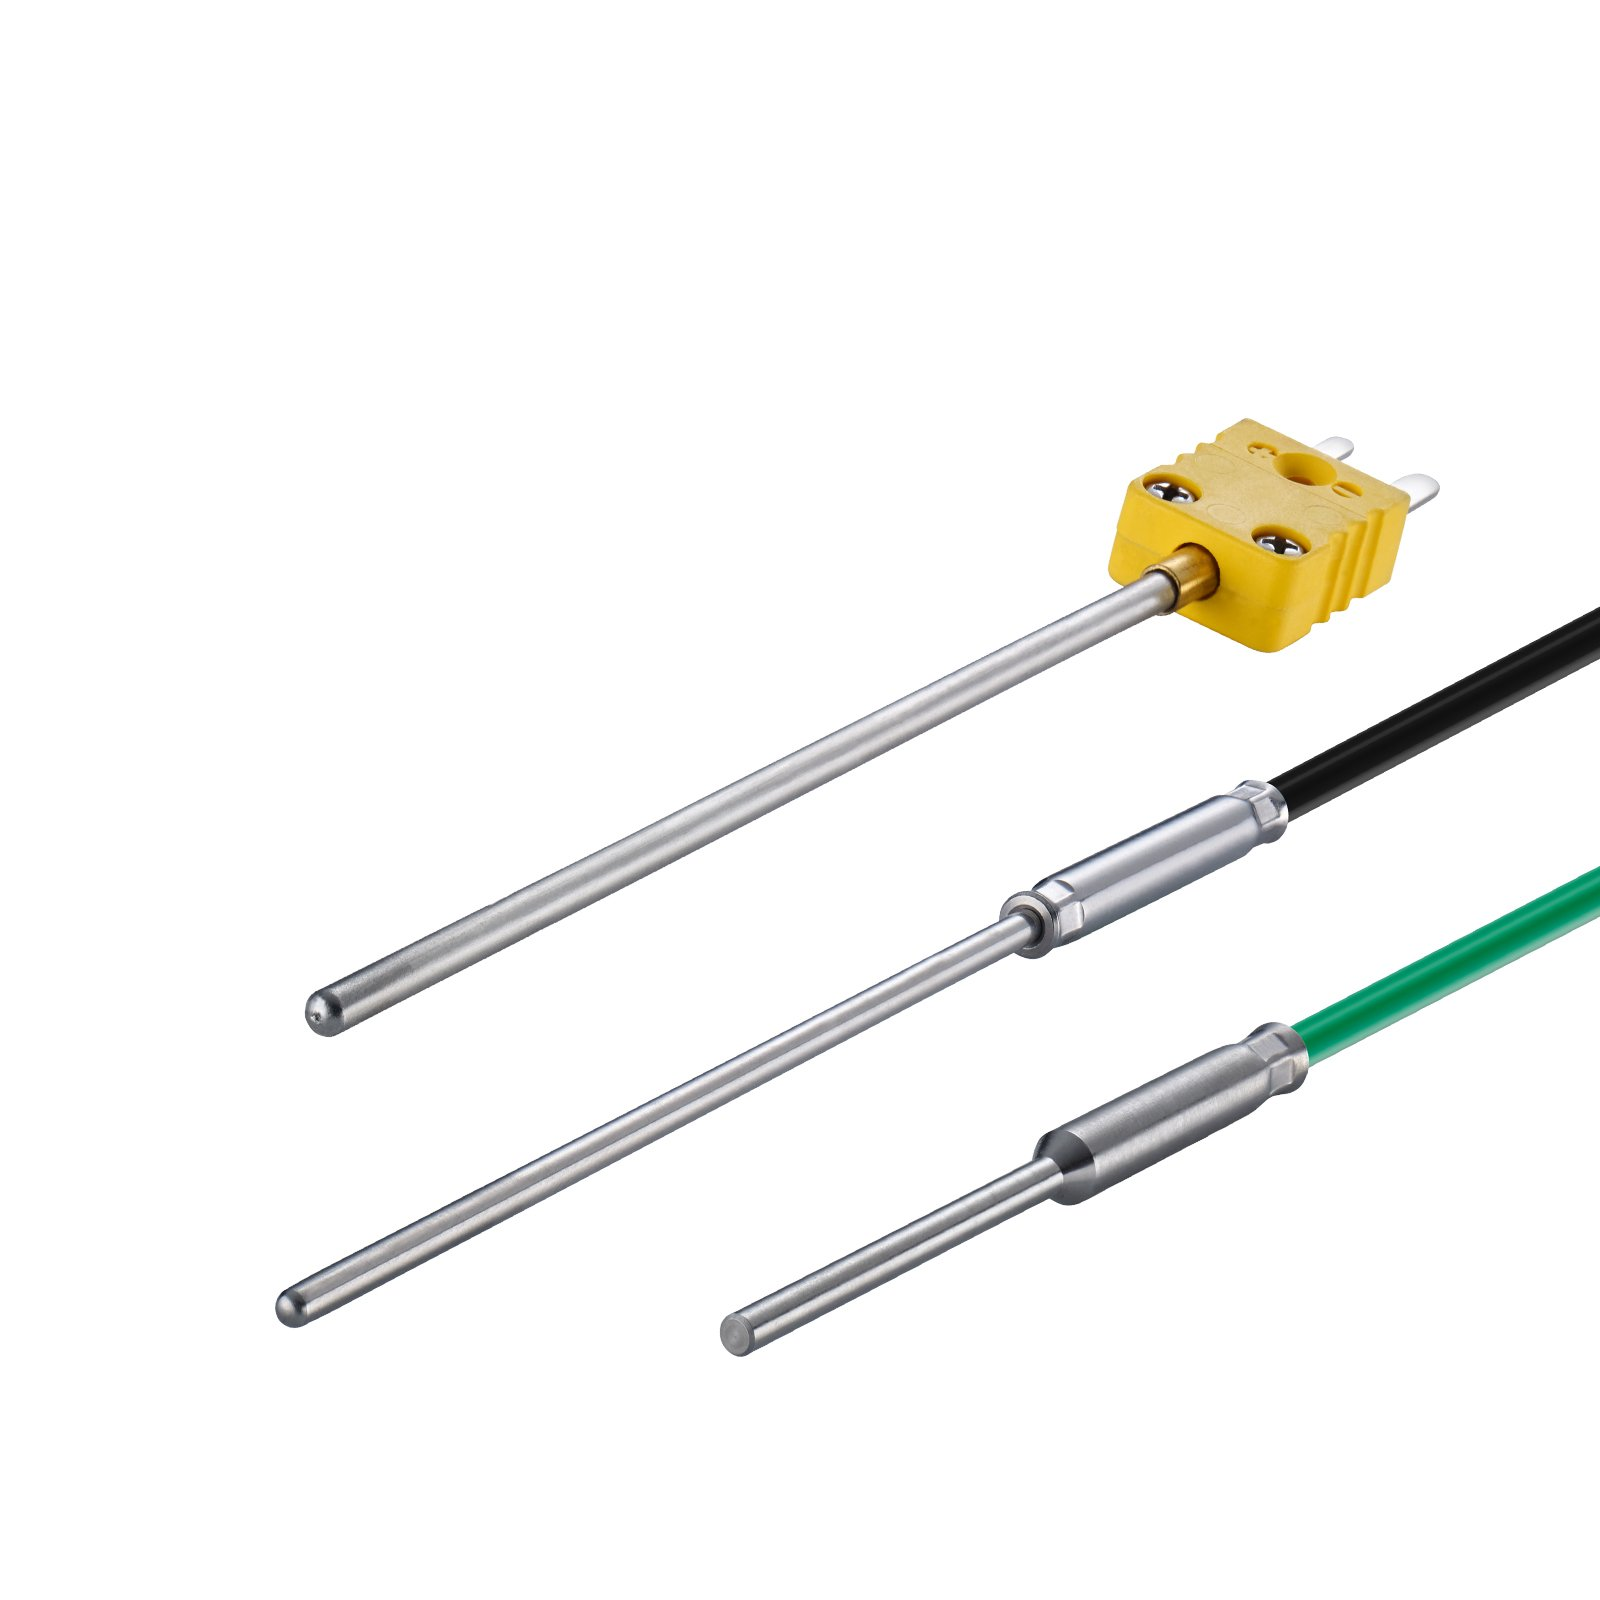 High temperature probes, temperature probes for high temperatures